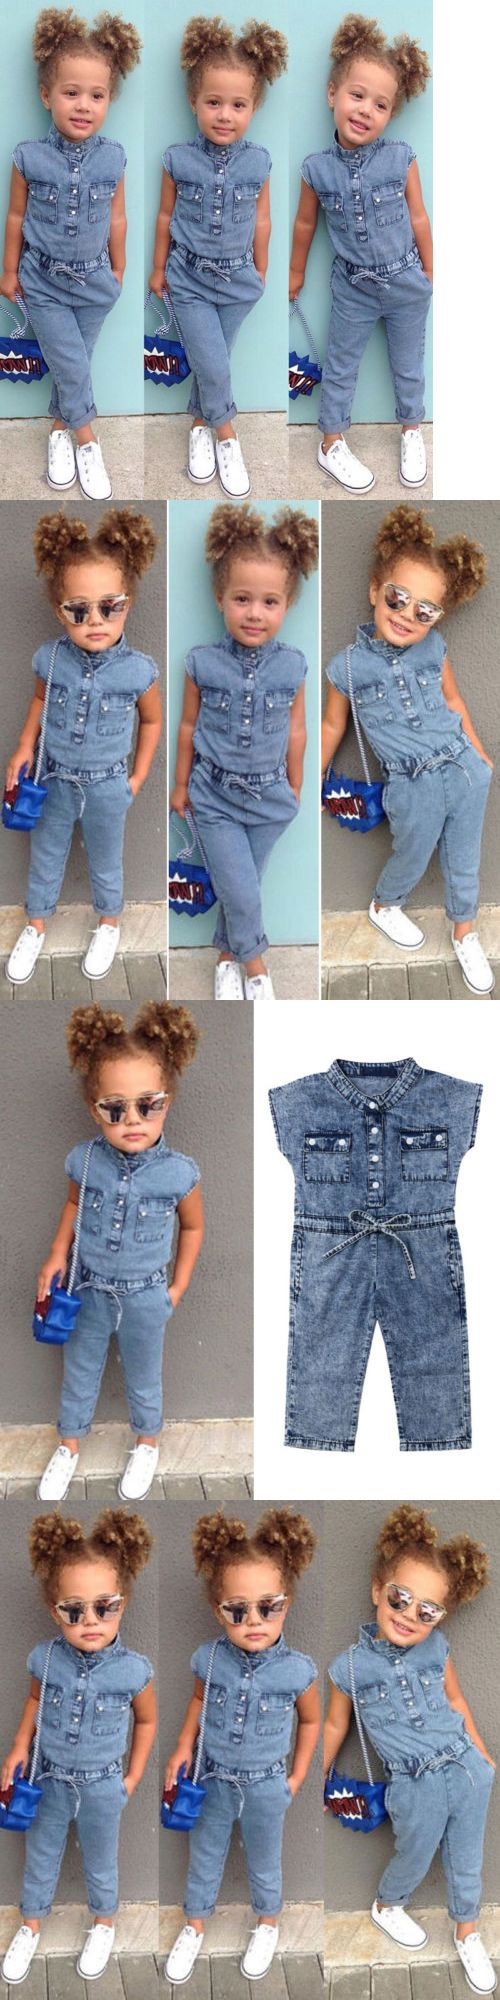 0cac4dbef Outfits and Sets 147211: Usa Canis Toddler Kids Baby Girl Denim Romper  Jumpsuits Playsuit Outfits